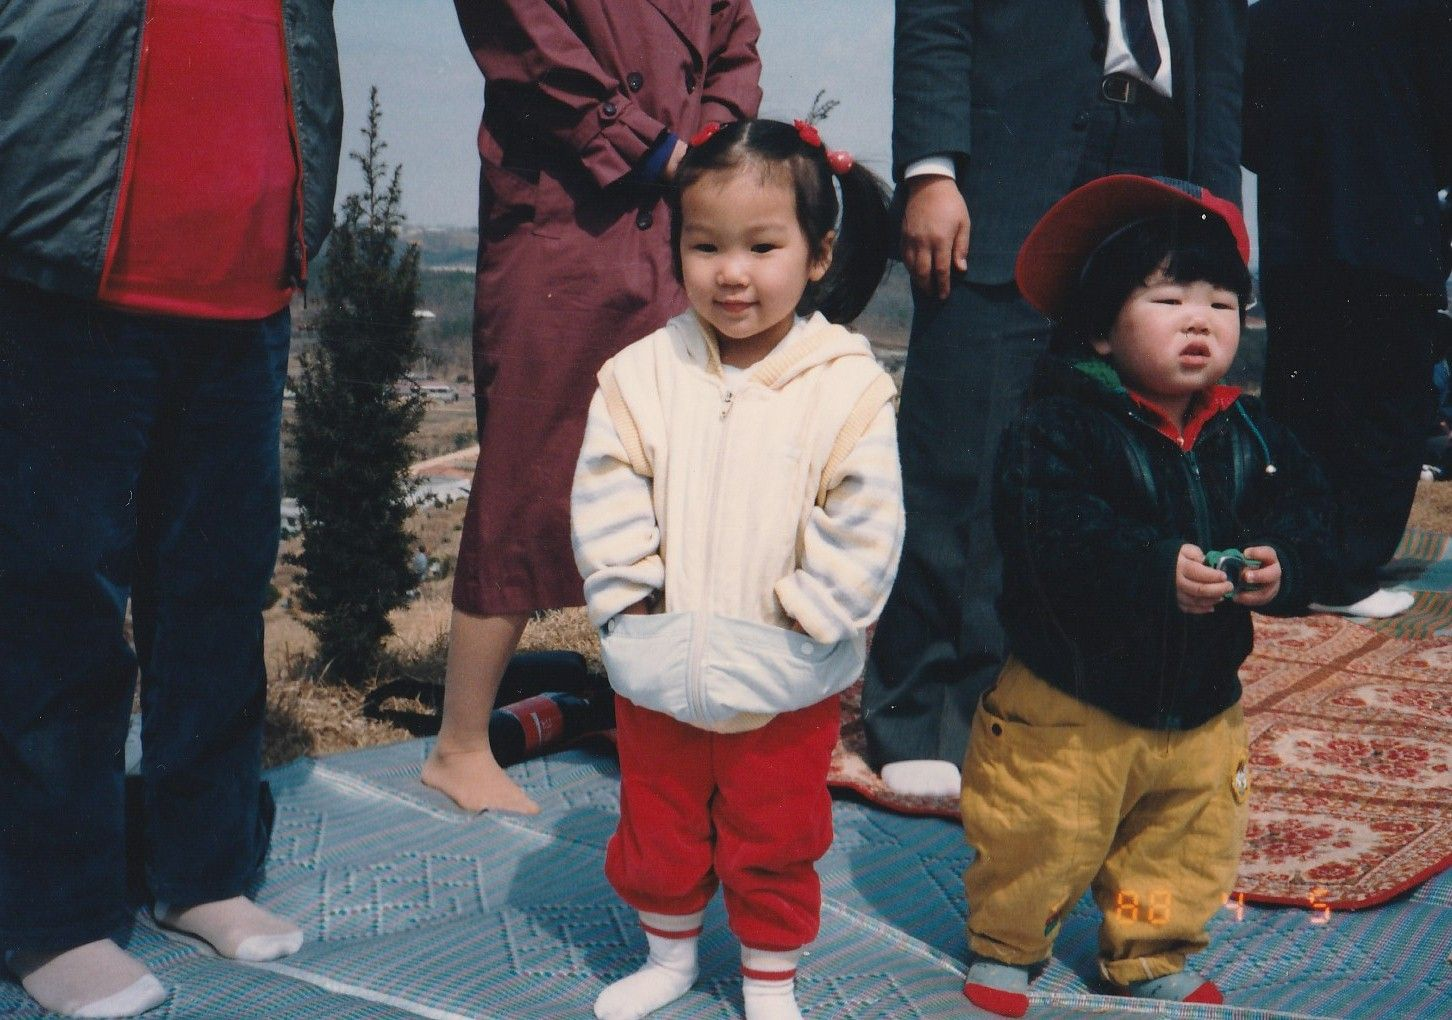 When I was young. With relatives and cousin HyunGyu Kim at the family cemetery mountain on a national holiday in autumn.